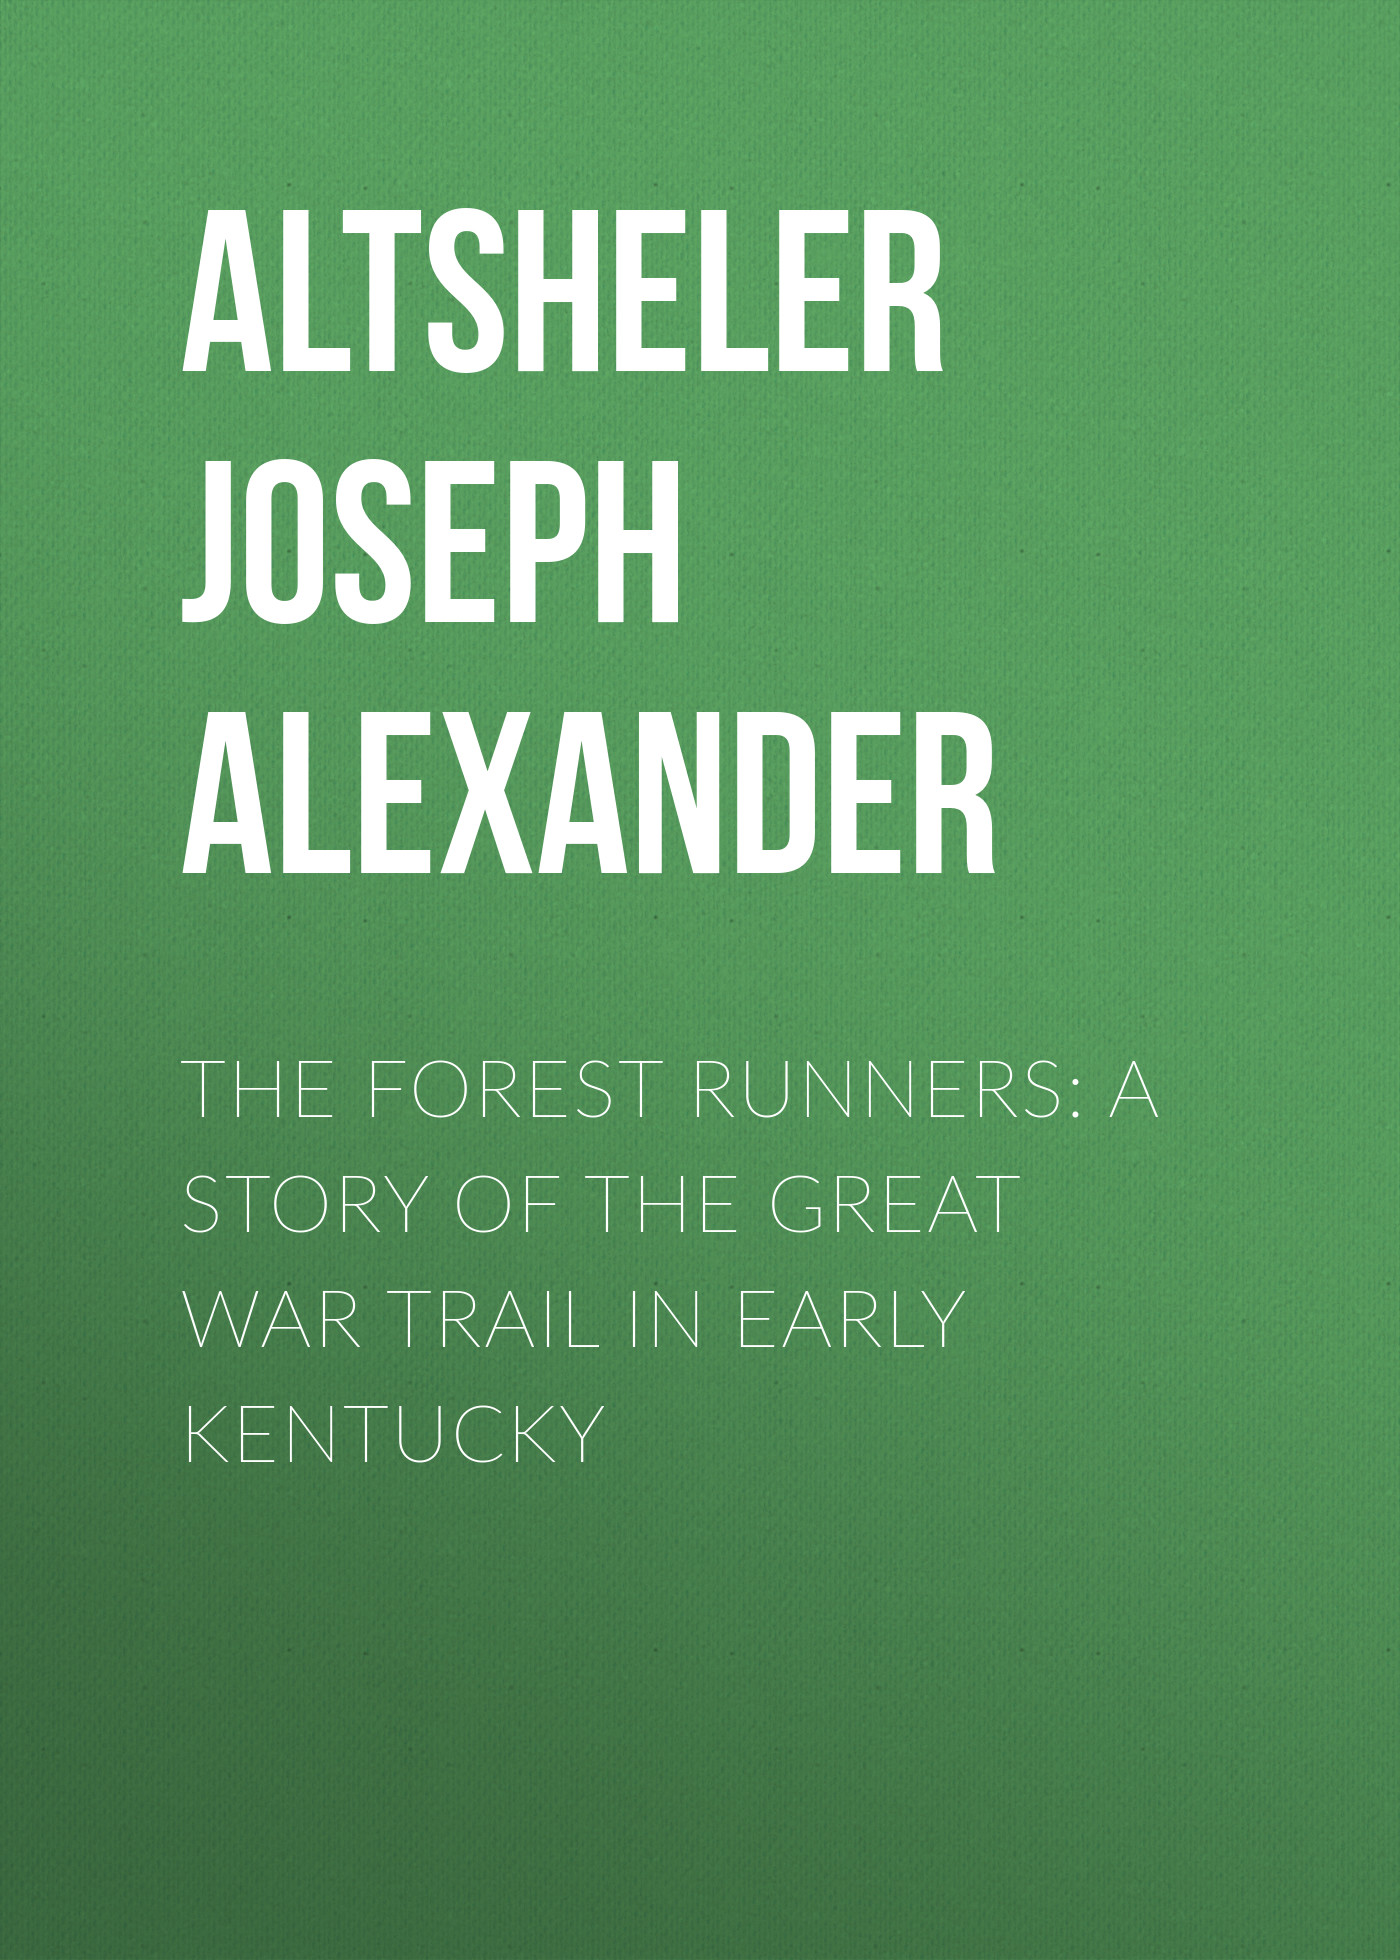 Altsheler Joseph Alexander The Forest Runners: A Story of the Great War Trail in Early Kentucky ralph compton ride the hard trail